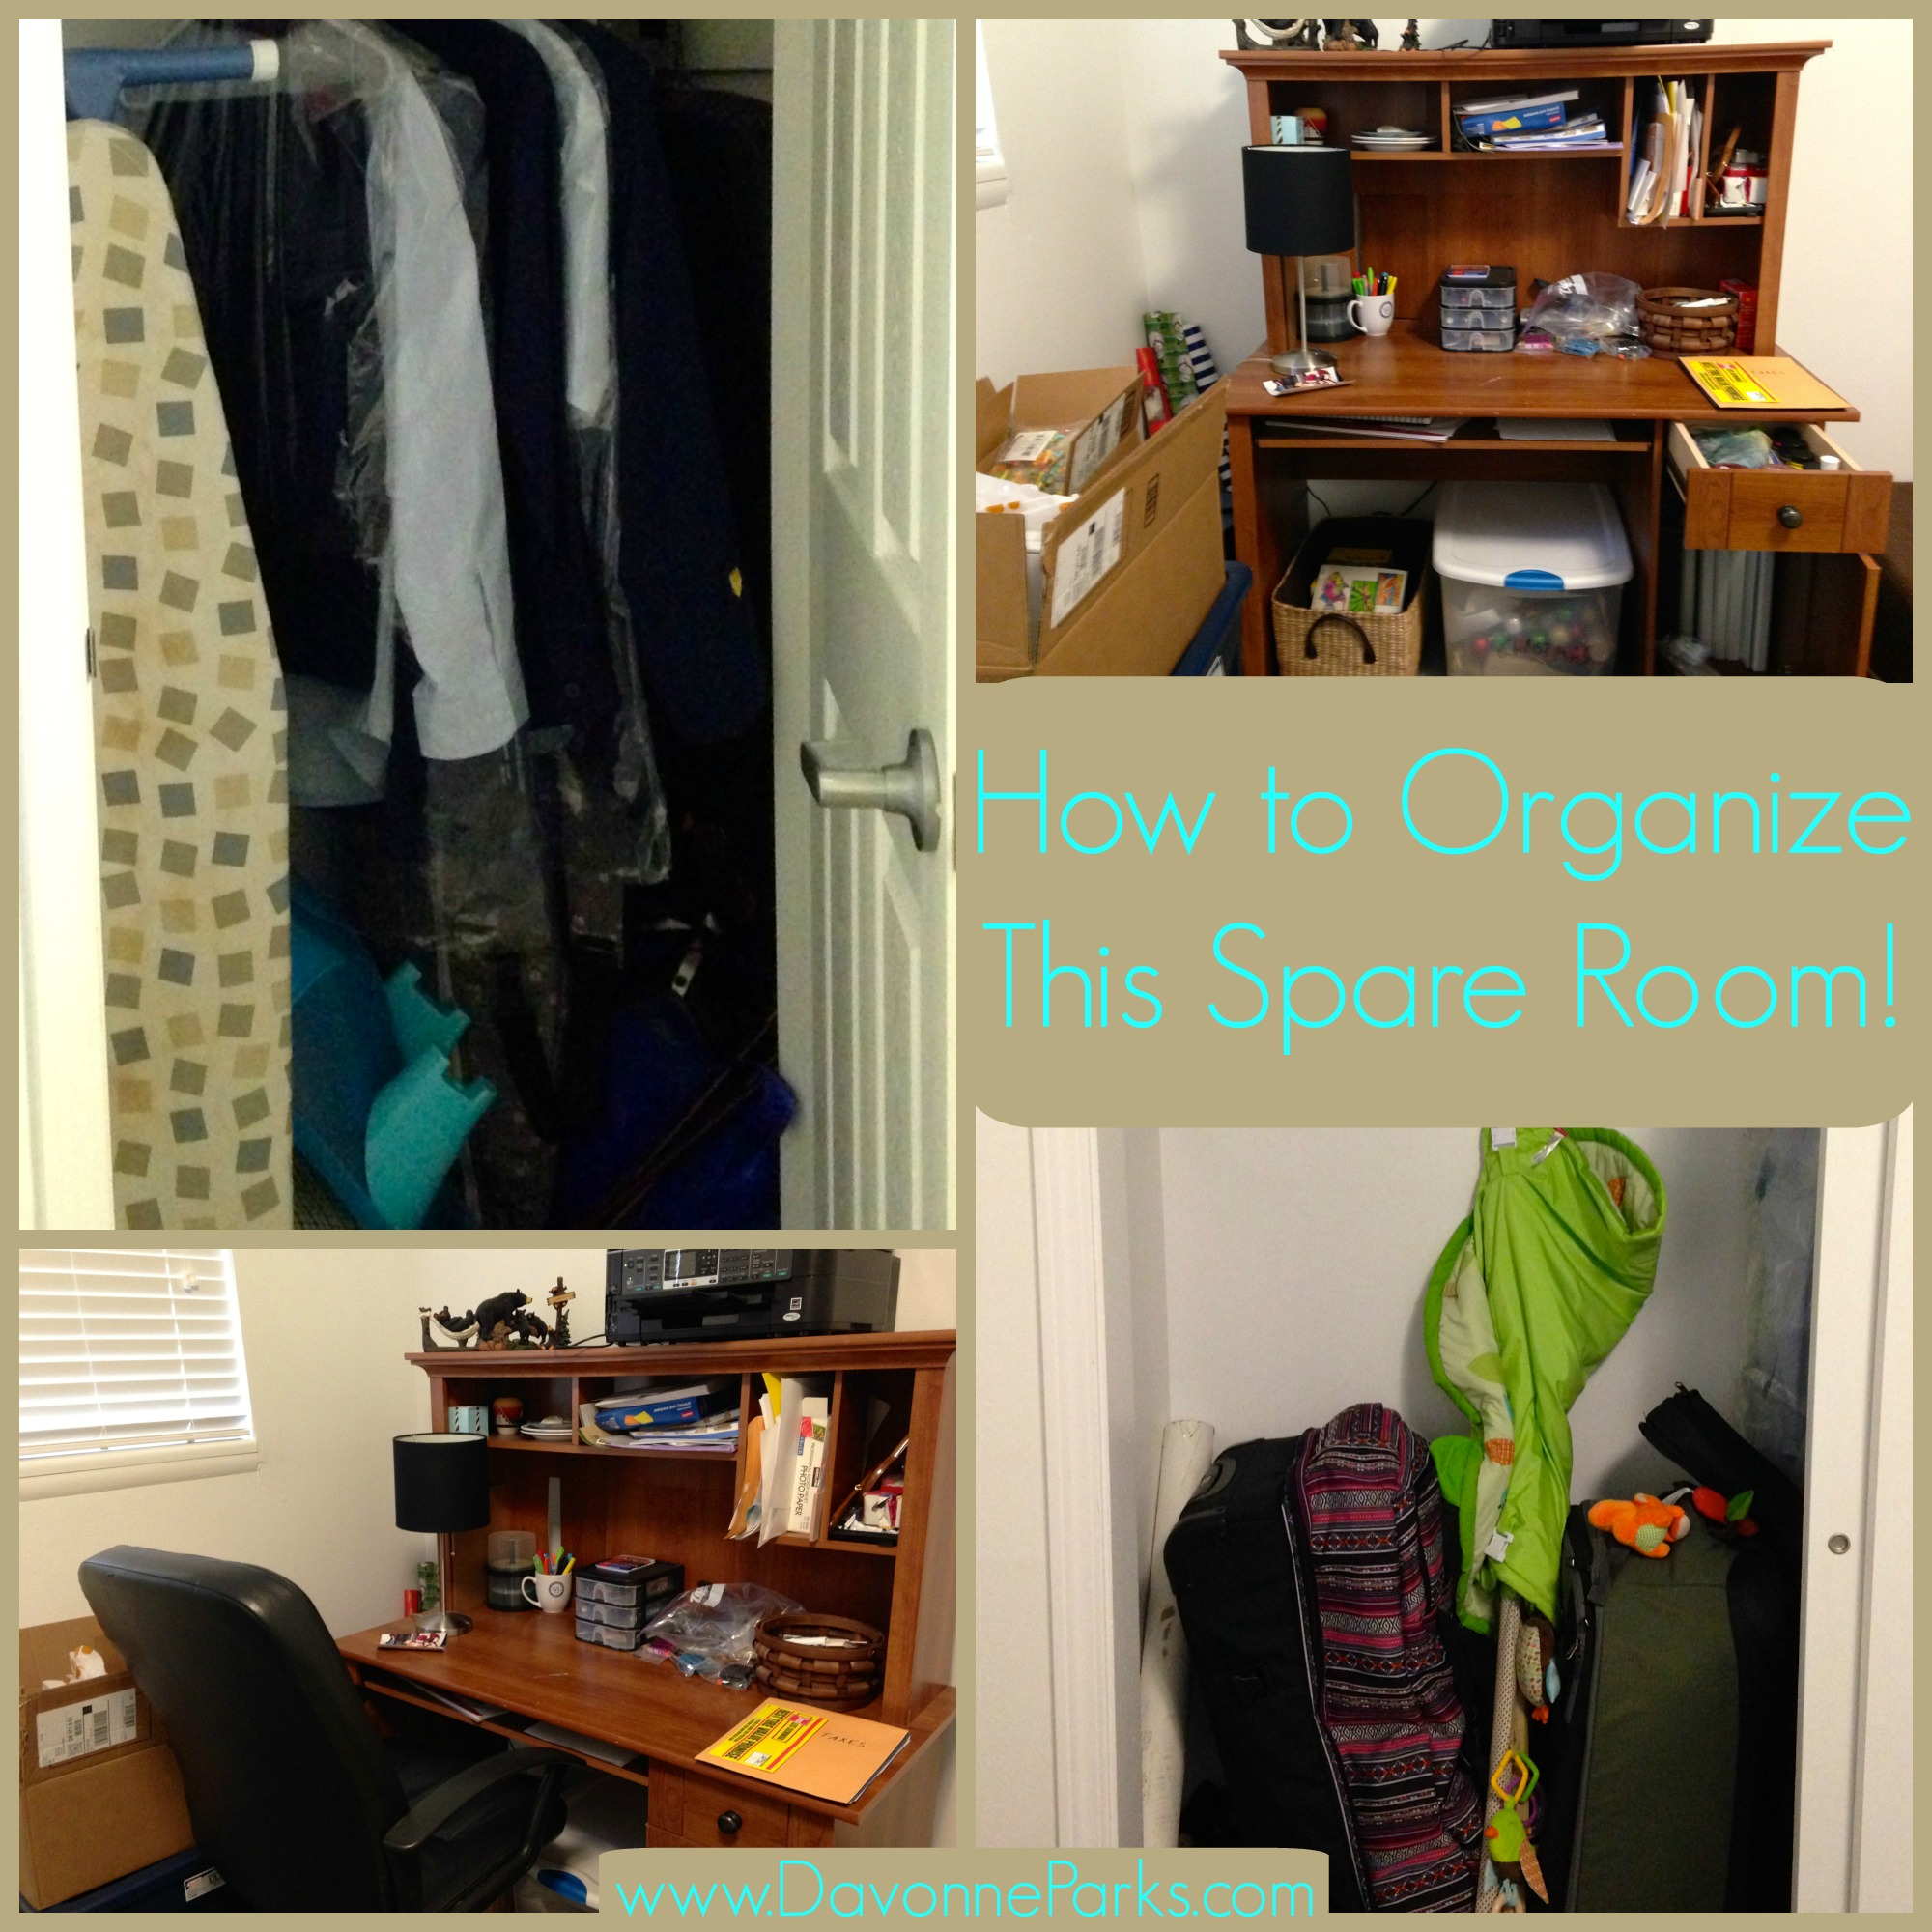 3 Simple Tips For Organizing Your Spare Room